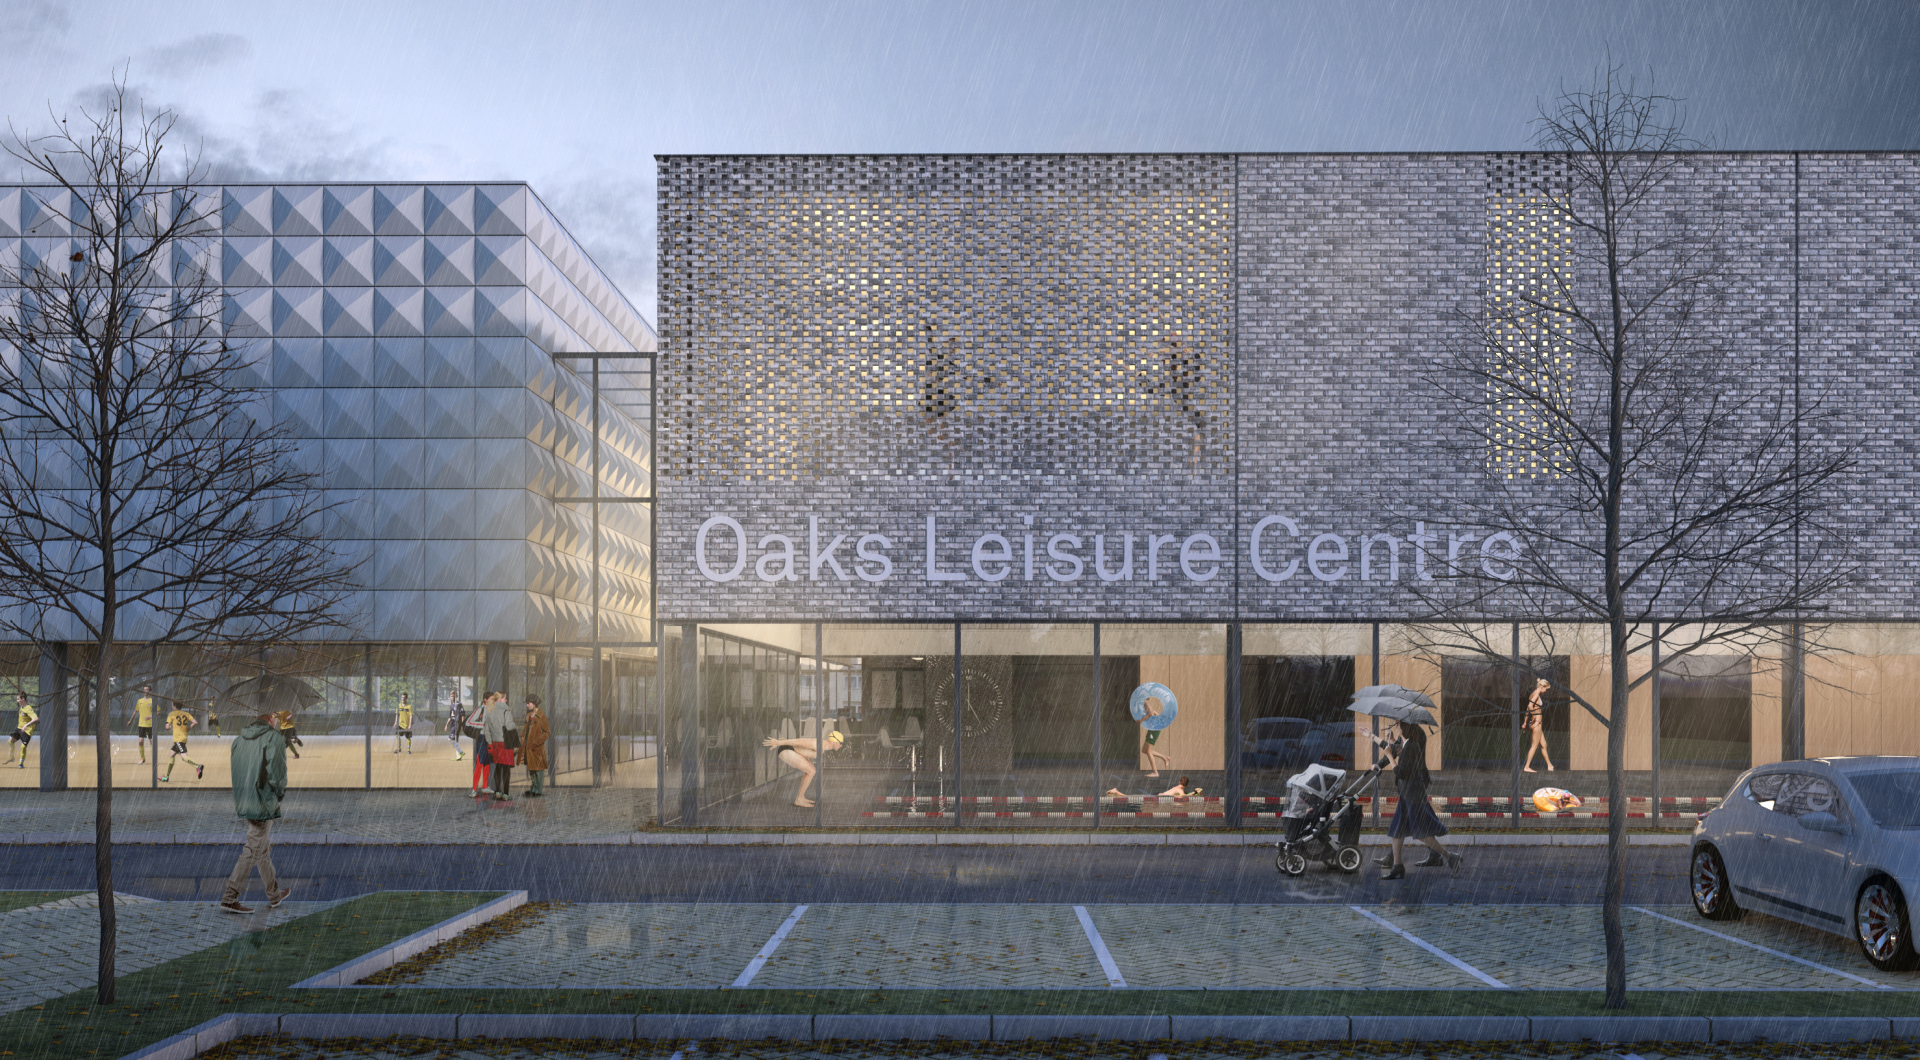 Oaks Leisure Centre plans submitted